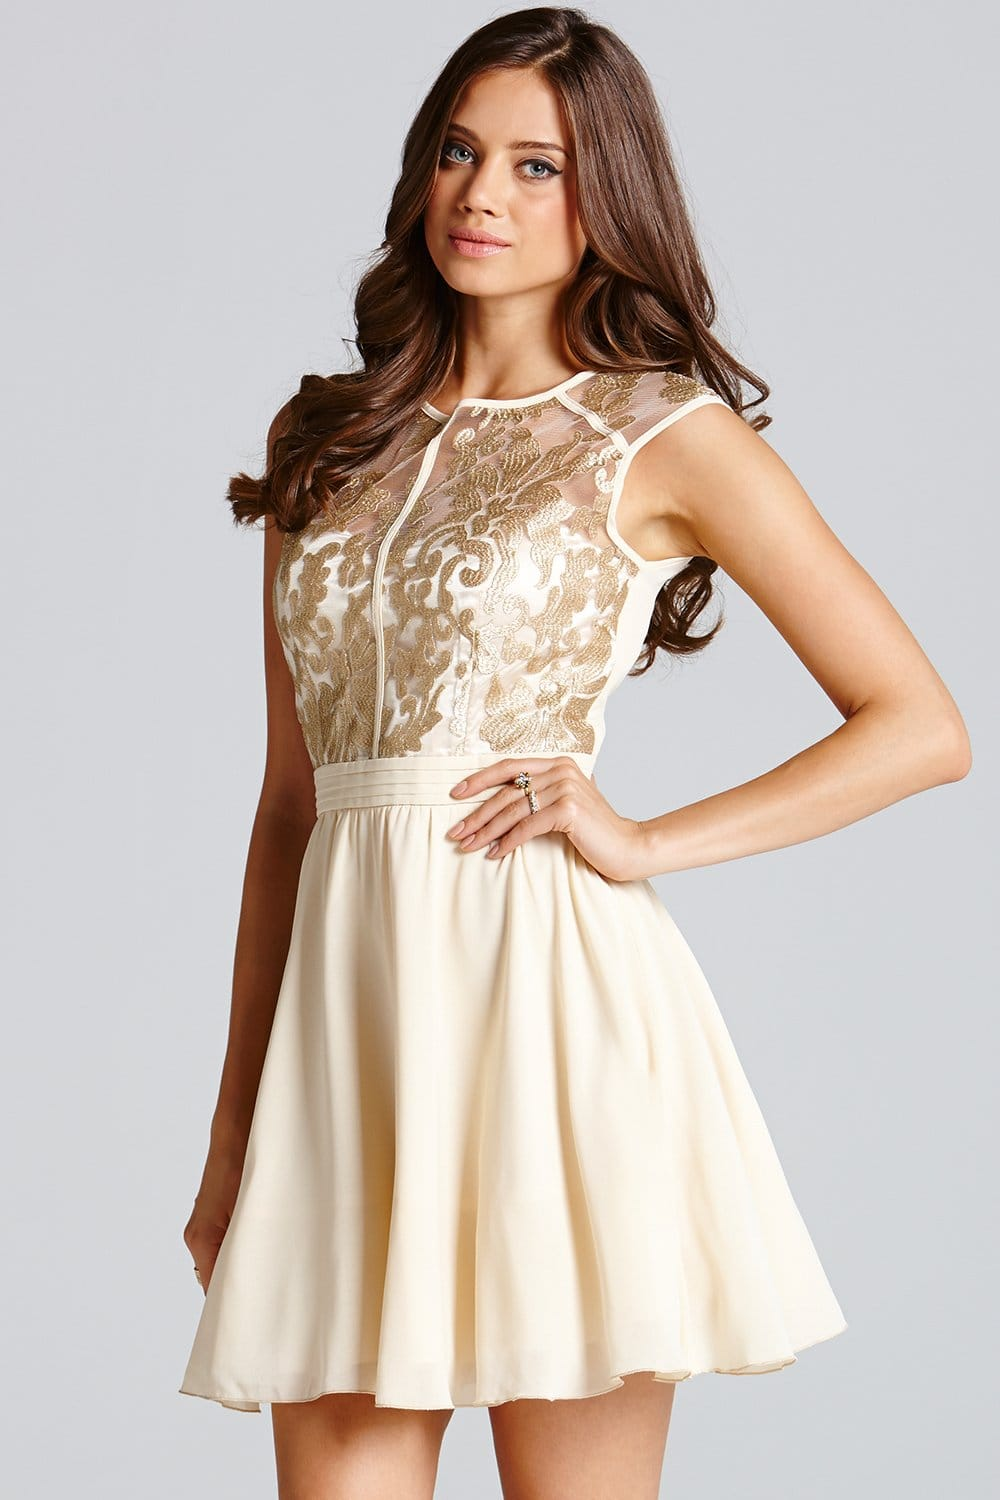 Cream and Gold Floral Lace Prom Dress - from Little Mistress UK